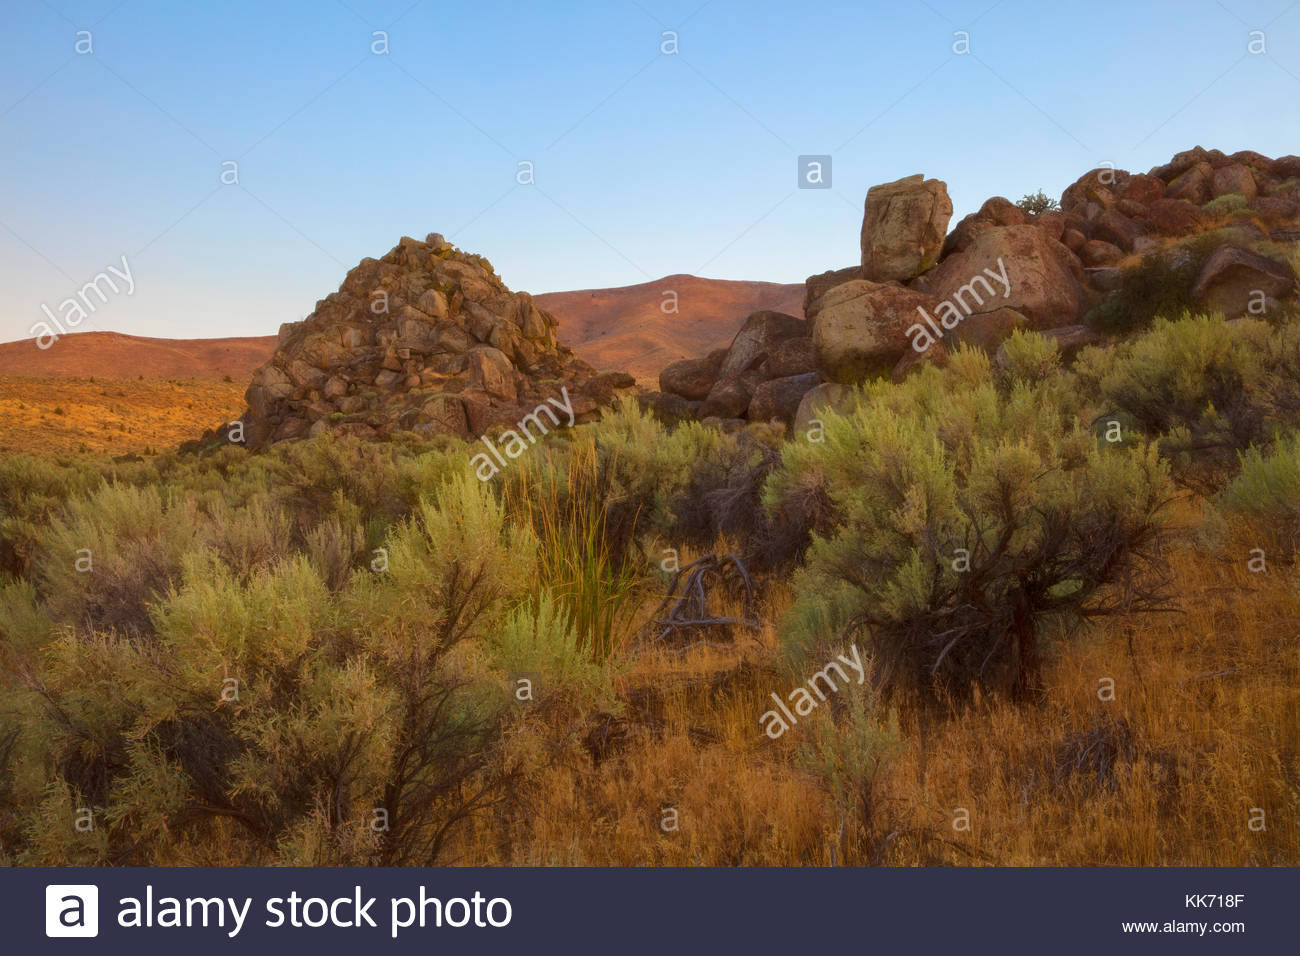 Diffused golden light at sunrise colors the high desert landscape and rock outcroppings in the Mormon Basin of Malheur - Stock Image